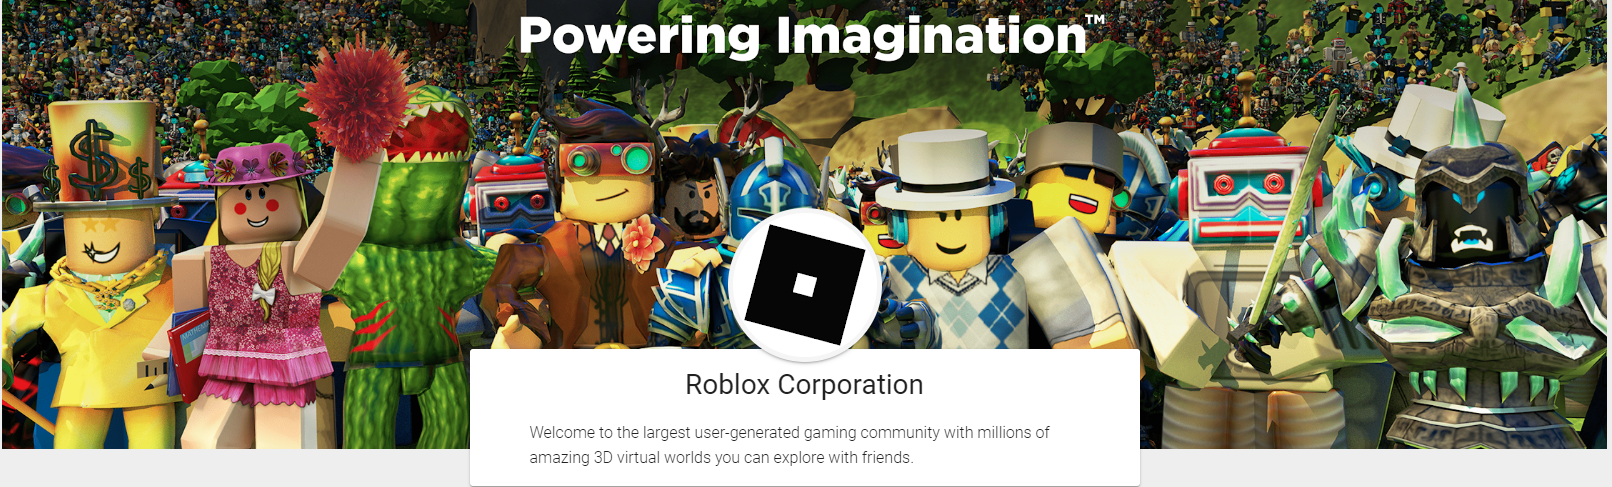 Adventure Story Game Roblox Adventure Mobile Game Marketing Tips Examples And Statistics For 2020 By Andrea Knezovic Udonis Medium